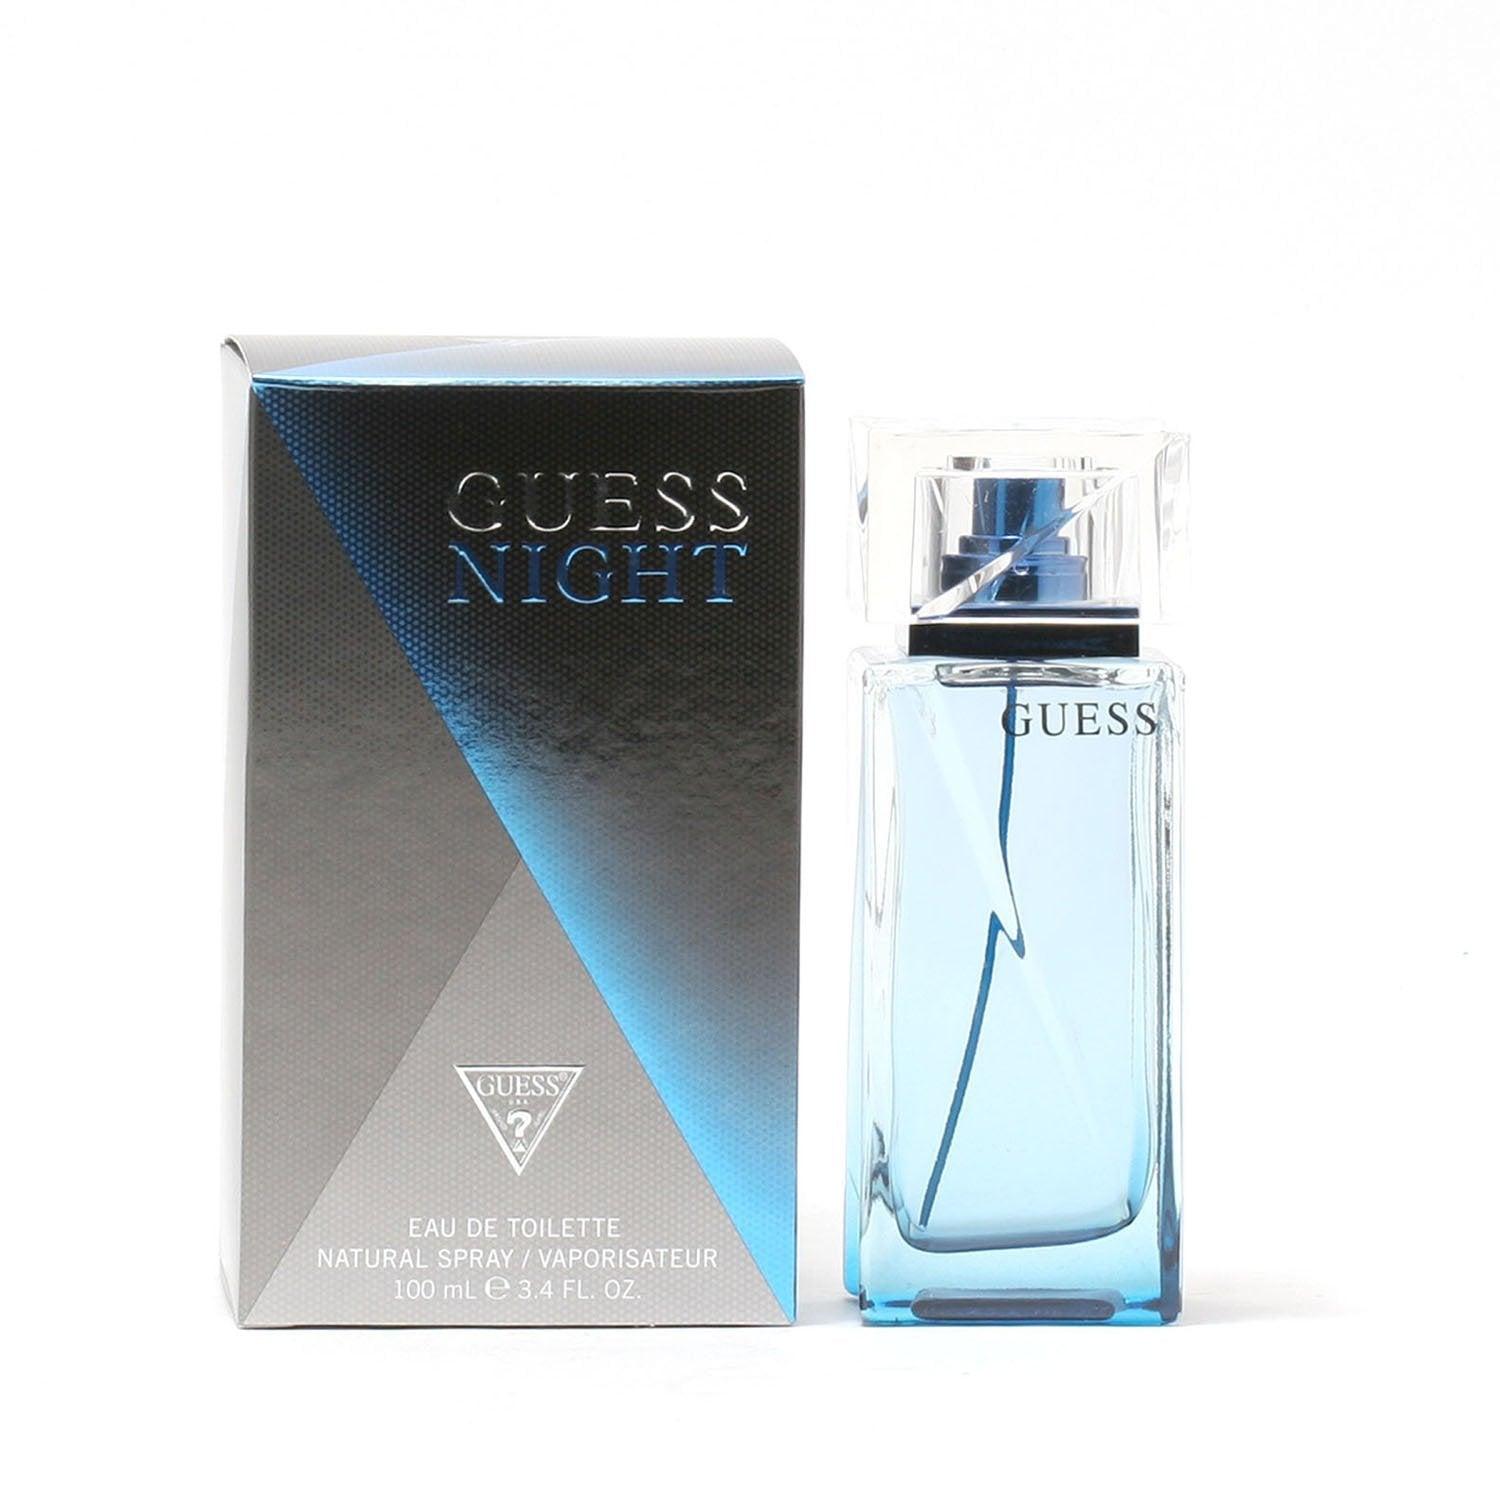 Cologne - GUESS NIGHT FOR MEN - EAU DE TOILETTE SPRAY